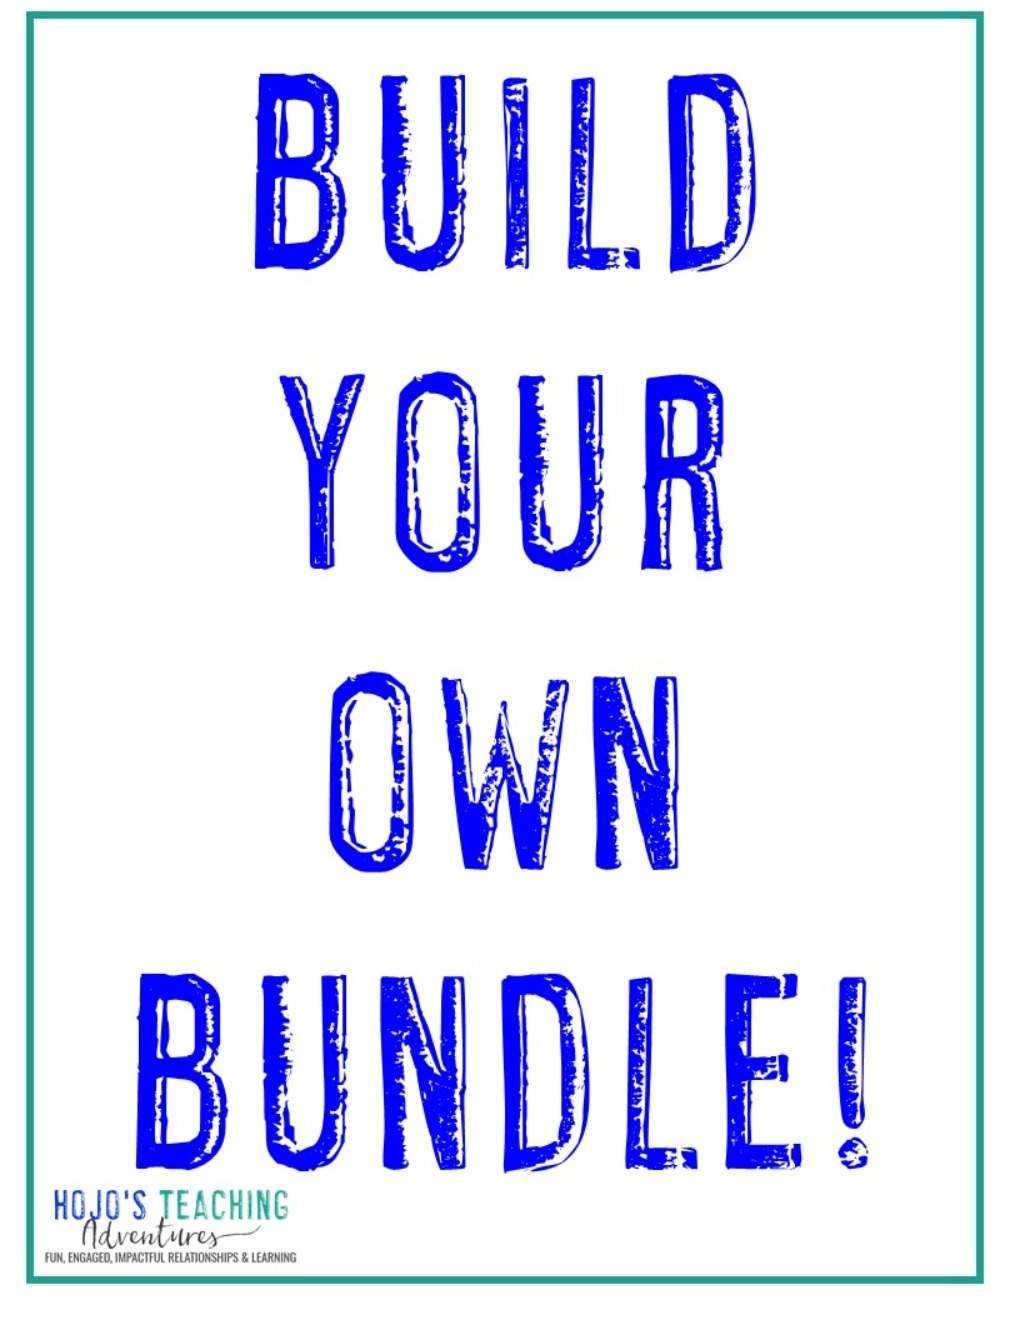 BUILD YOUR OWN BUNDLE Details